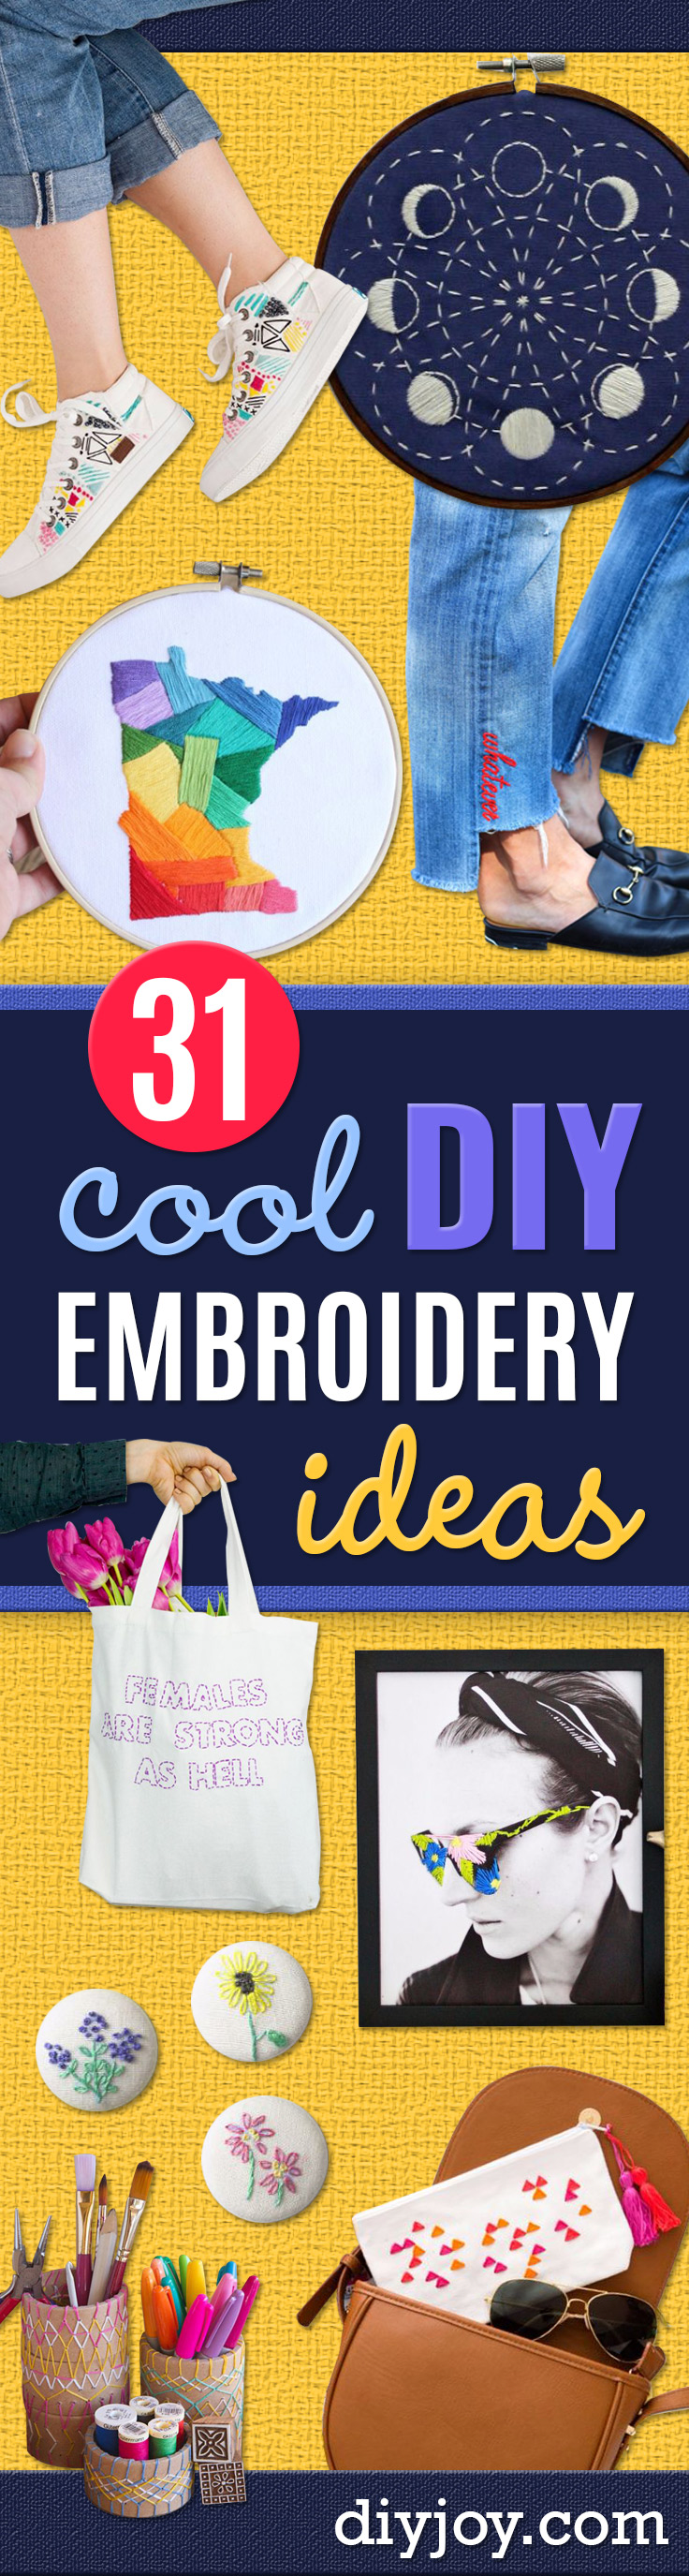 free embroidery patterns - embroidery gifts ideas - Best Embroidery Projects and Step by Step DIY Tutorials for Making Home Decor, Wall Art, Pillows and Creative Handmade Sewing Gifts